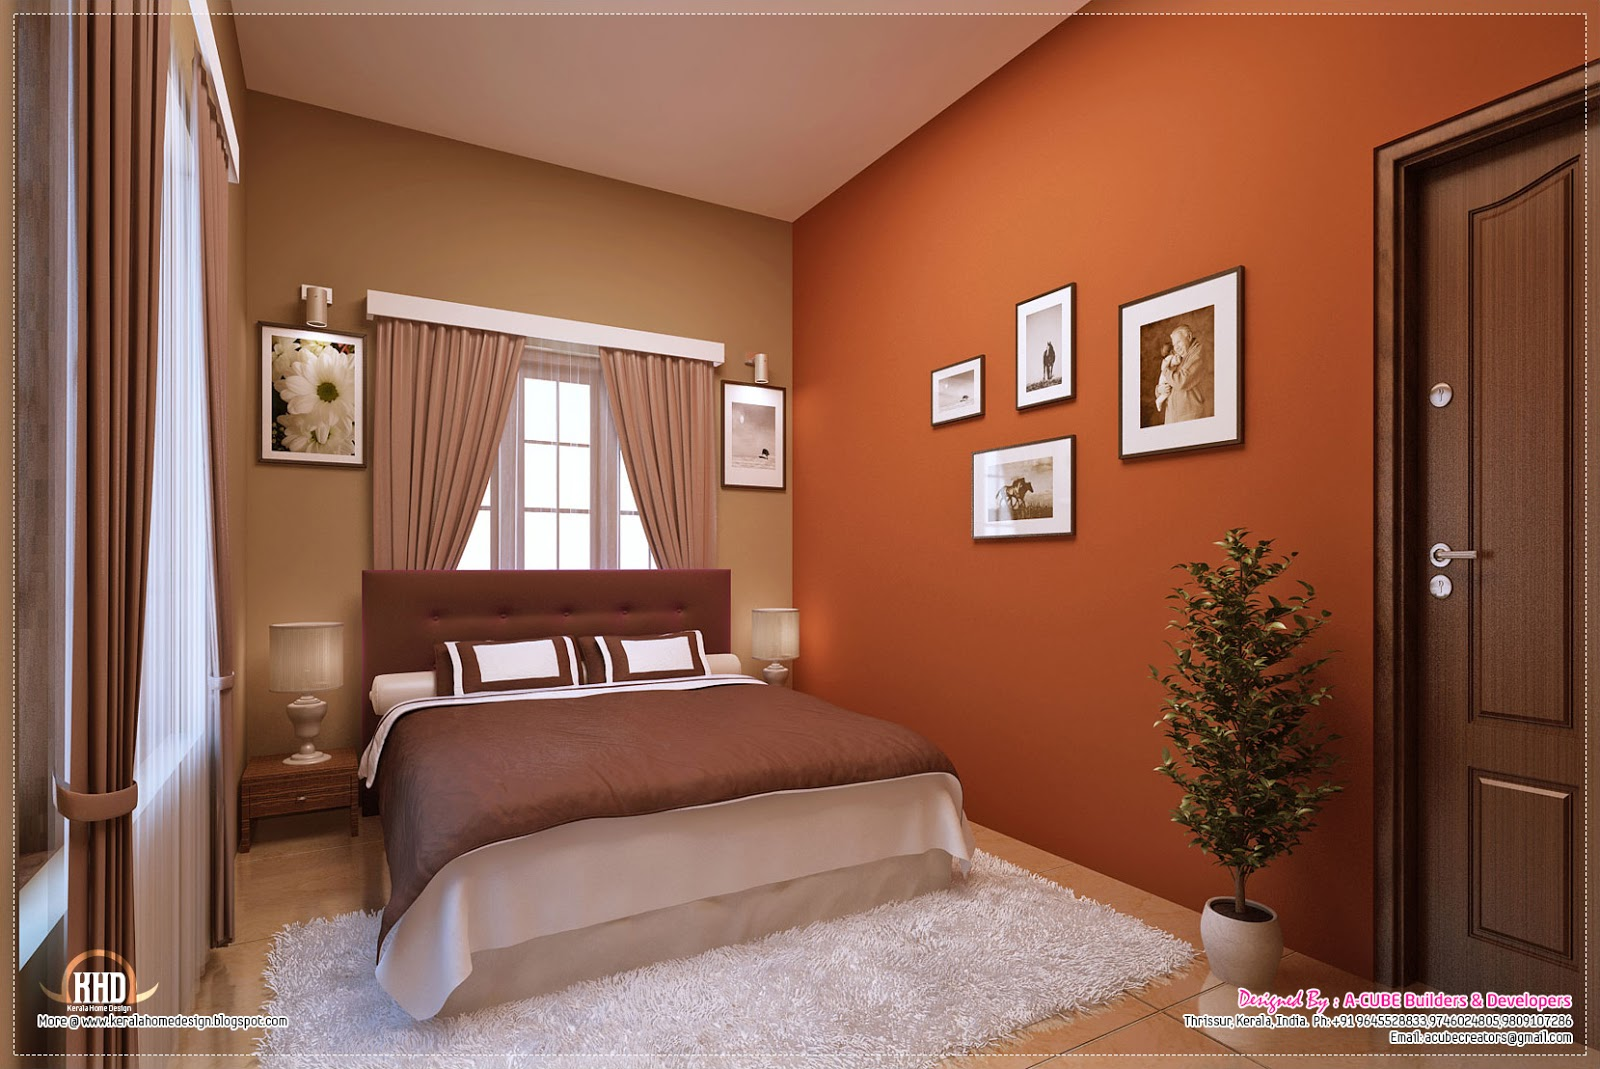 Awesome interior decoration ideas kerala home design and for House interior design bedroom